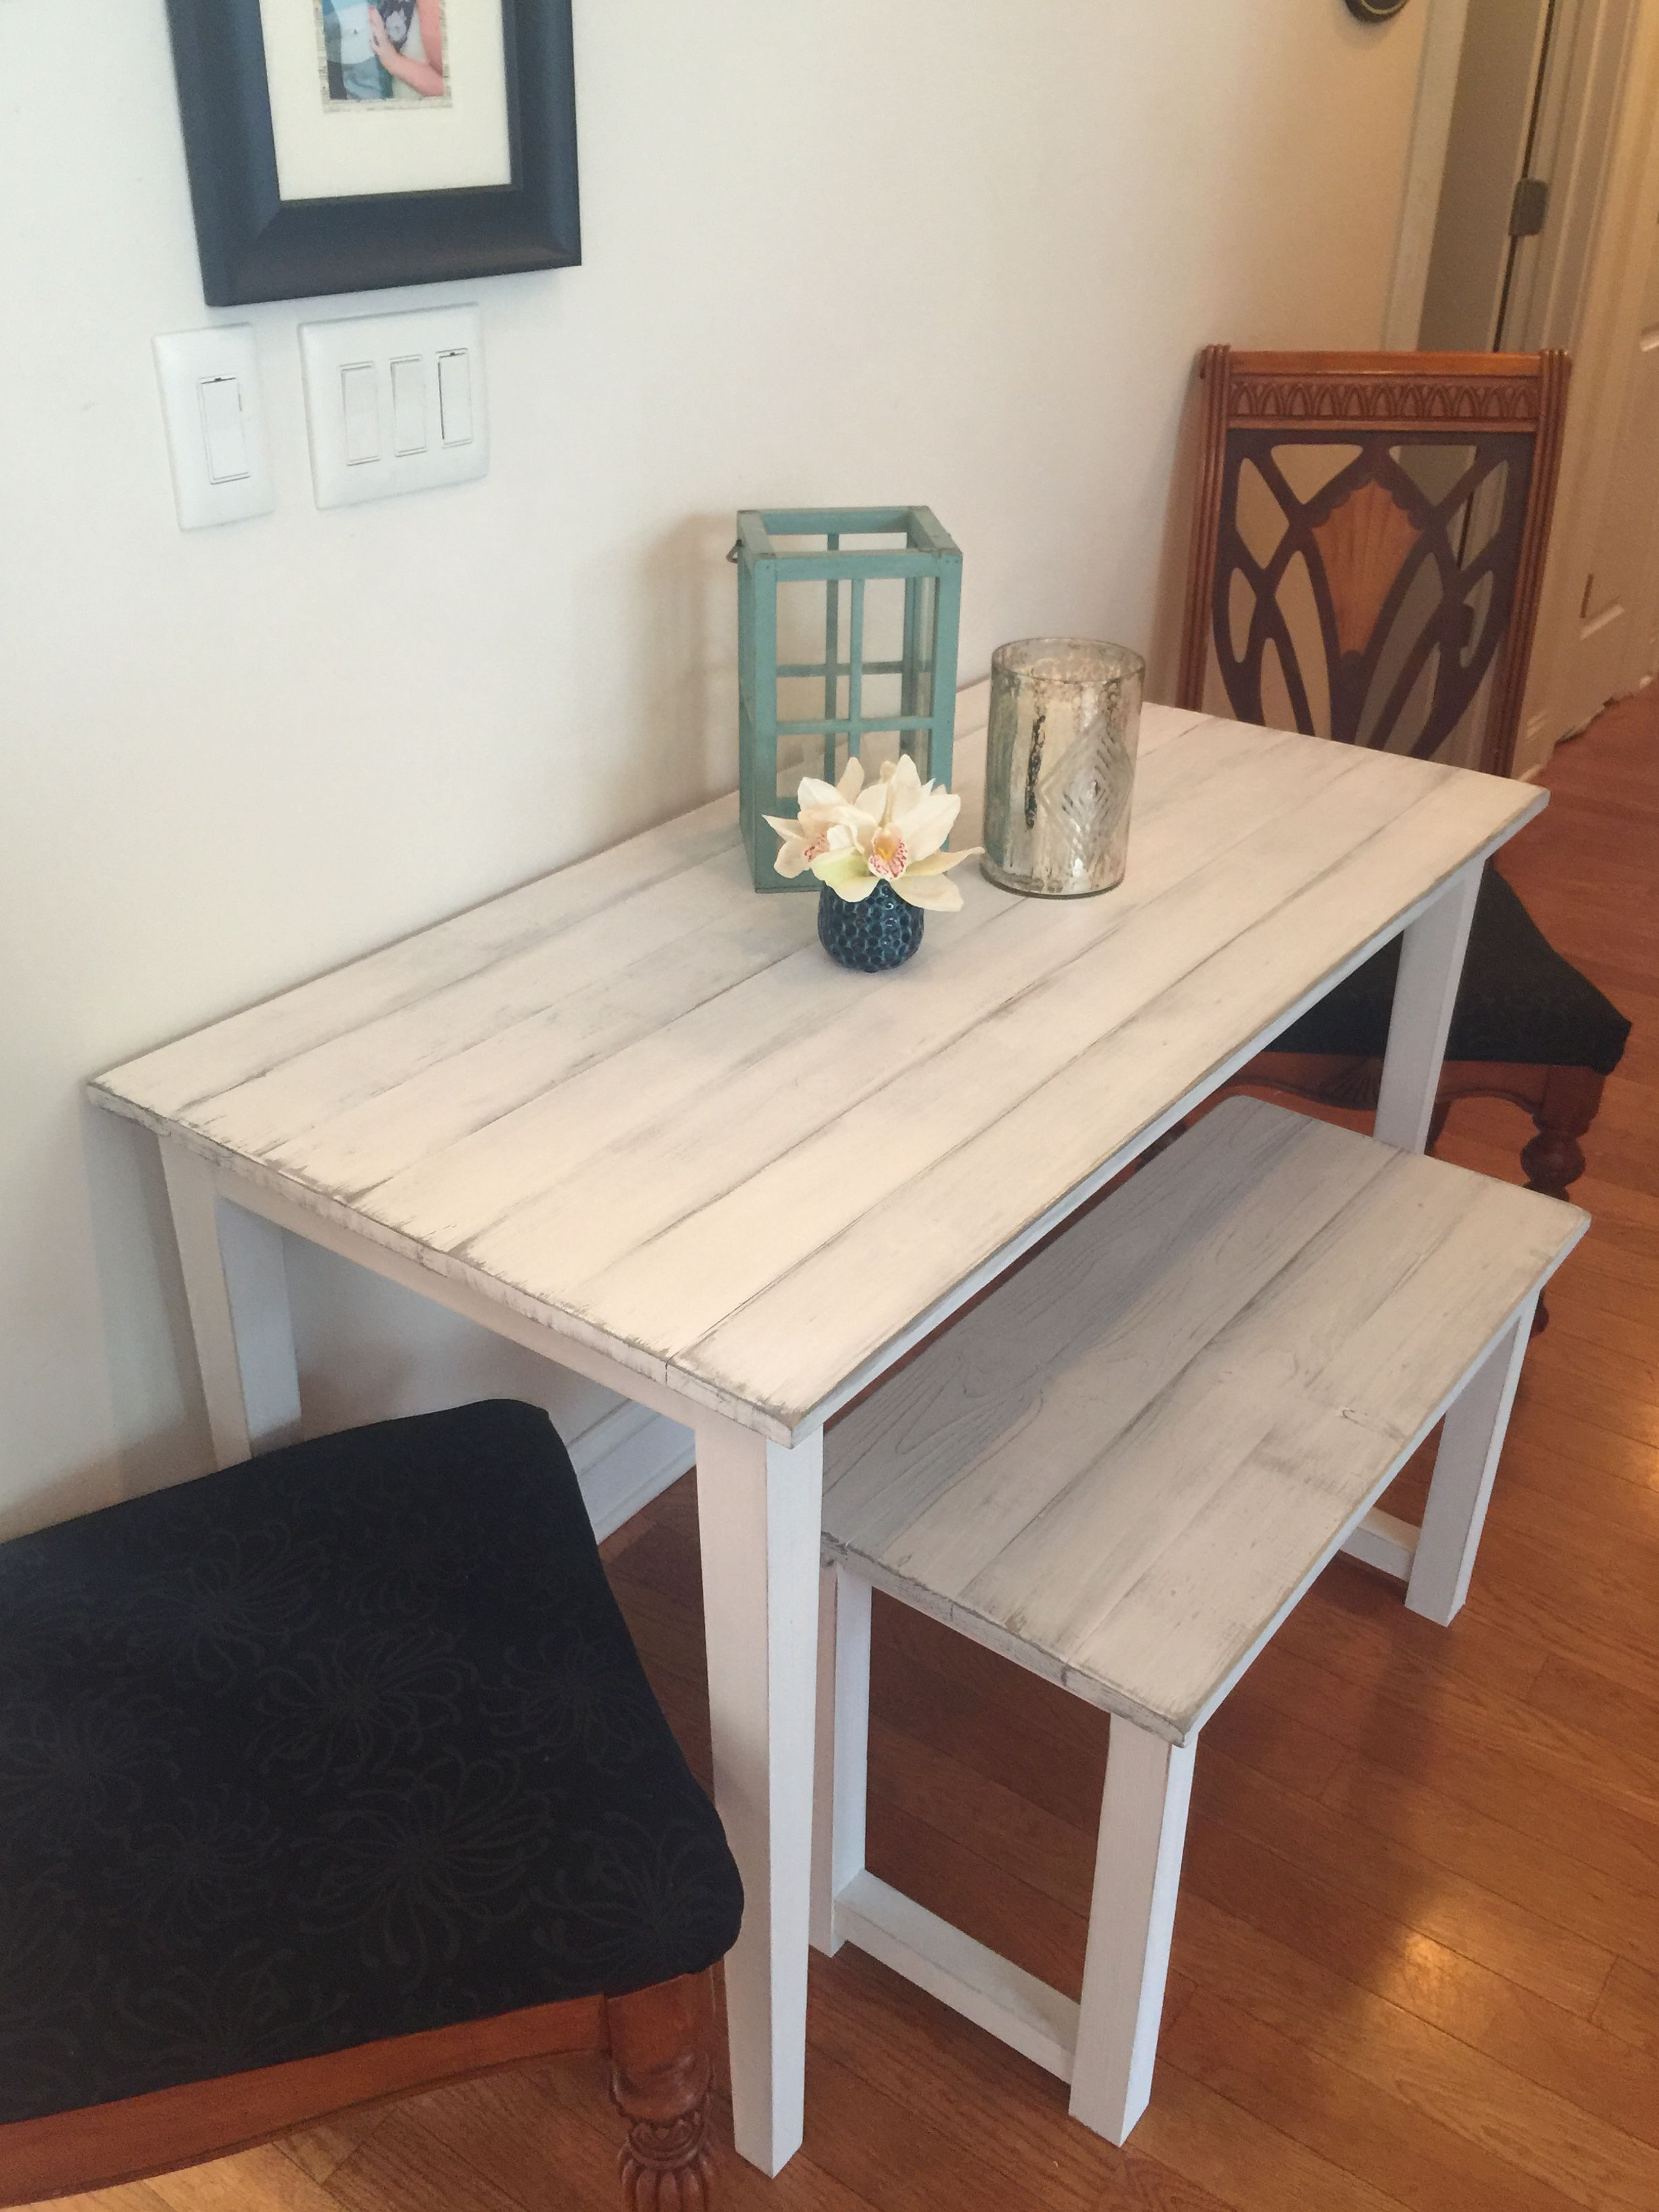 Petit Table De Cuisine Small Farmhouse Table For Small Room Bench And Distressed White